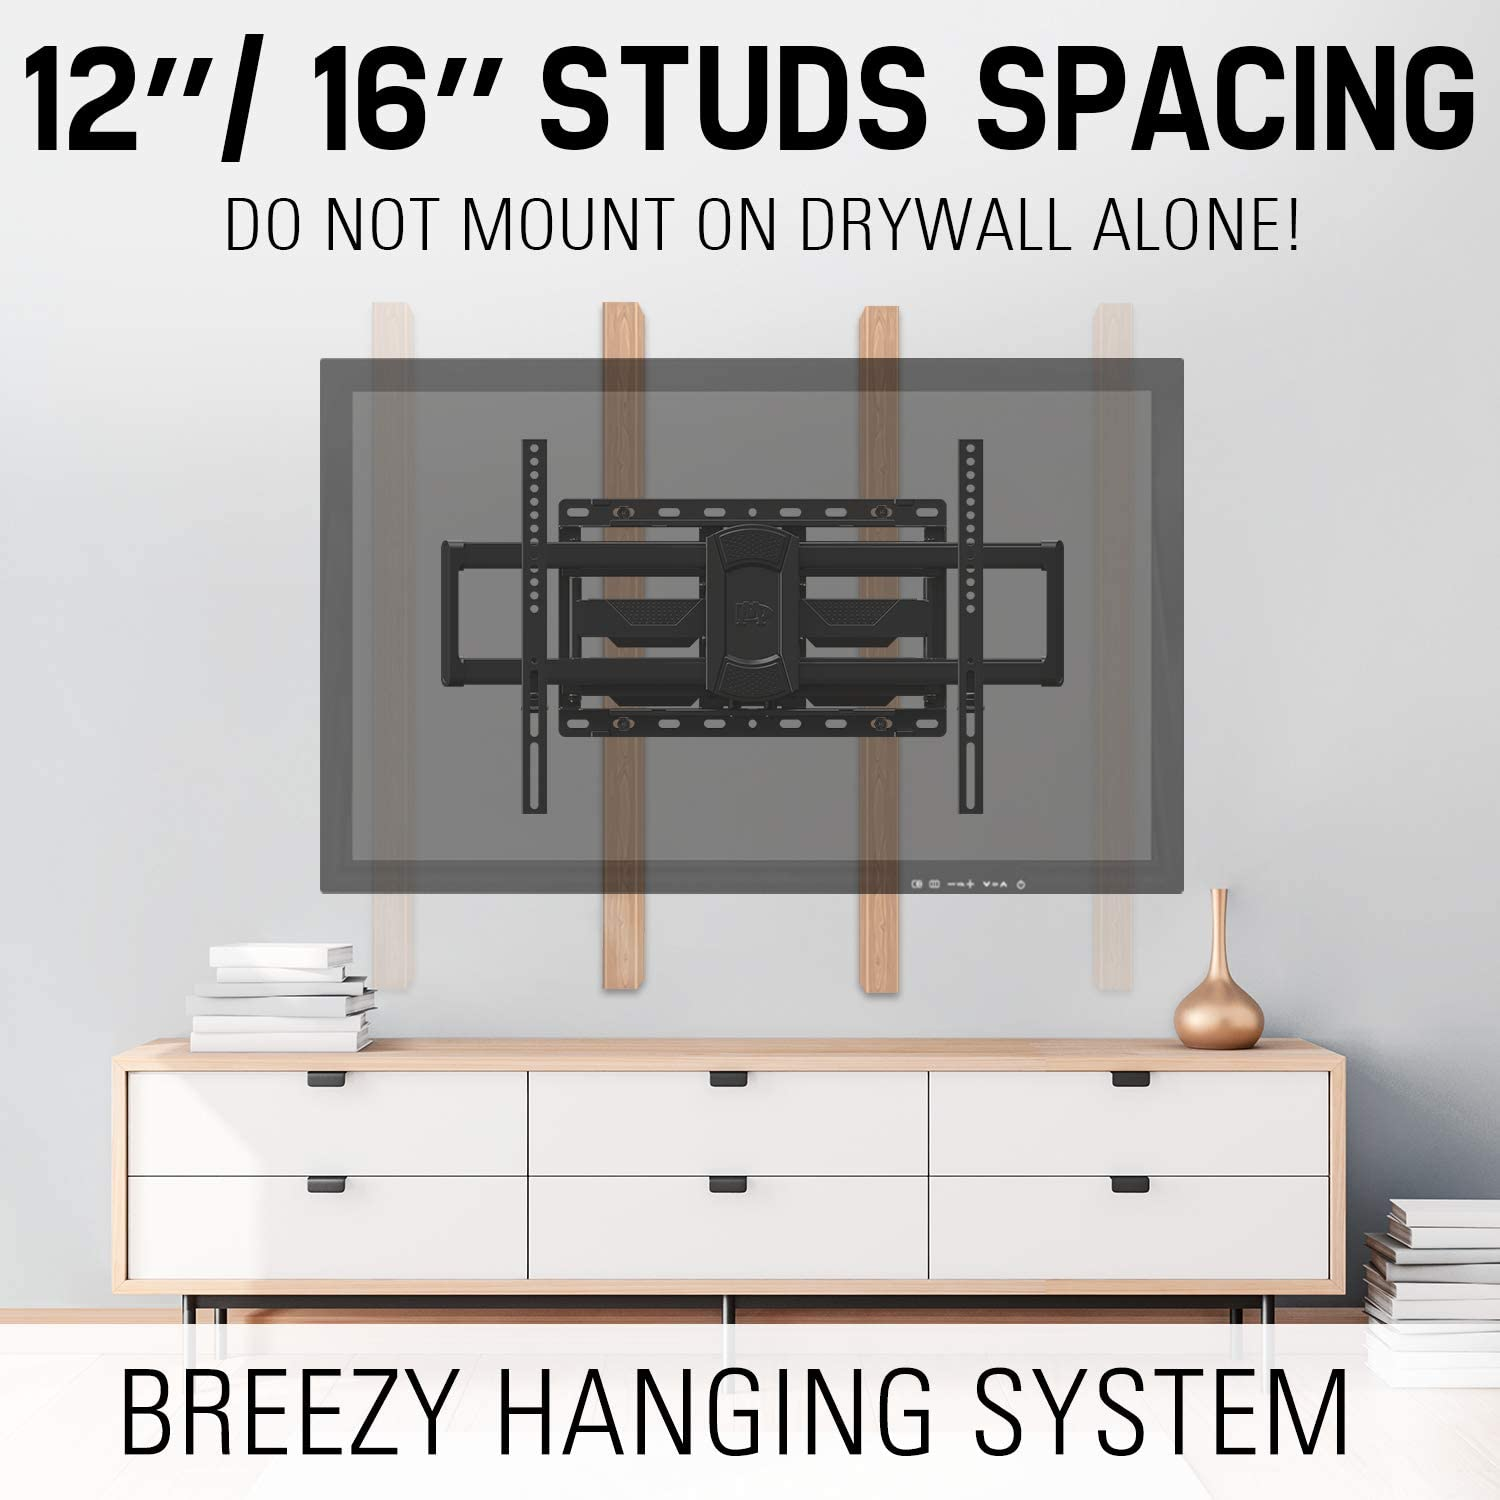 """Mounting Dream TV Mount- Full Motion TV Mount for 42-70 inch TVs, TV Wall Mount Bracket with Dual Articulating Arms, Fits 12""""- 16"""" Wood Studs, TV Wall Mounts with VESA 600x400mm Holds up to 100lbs"""